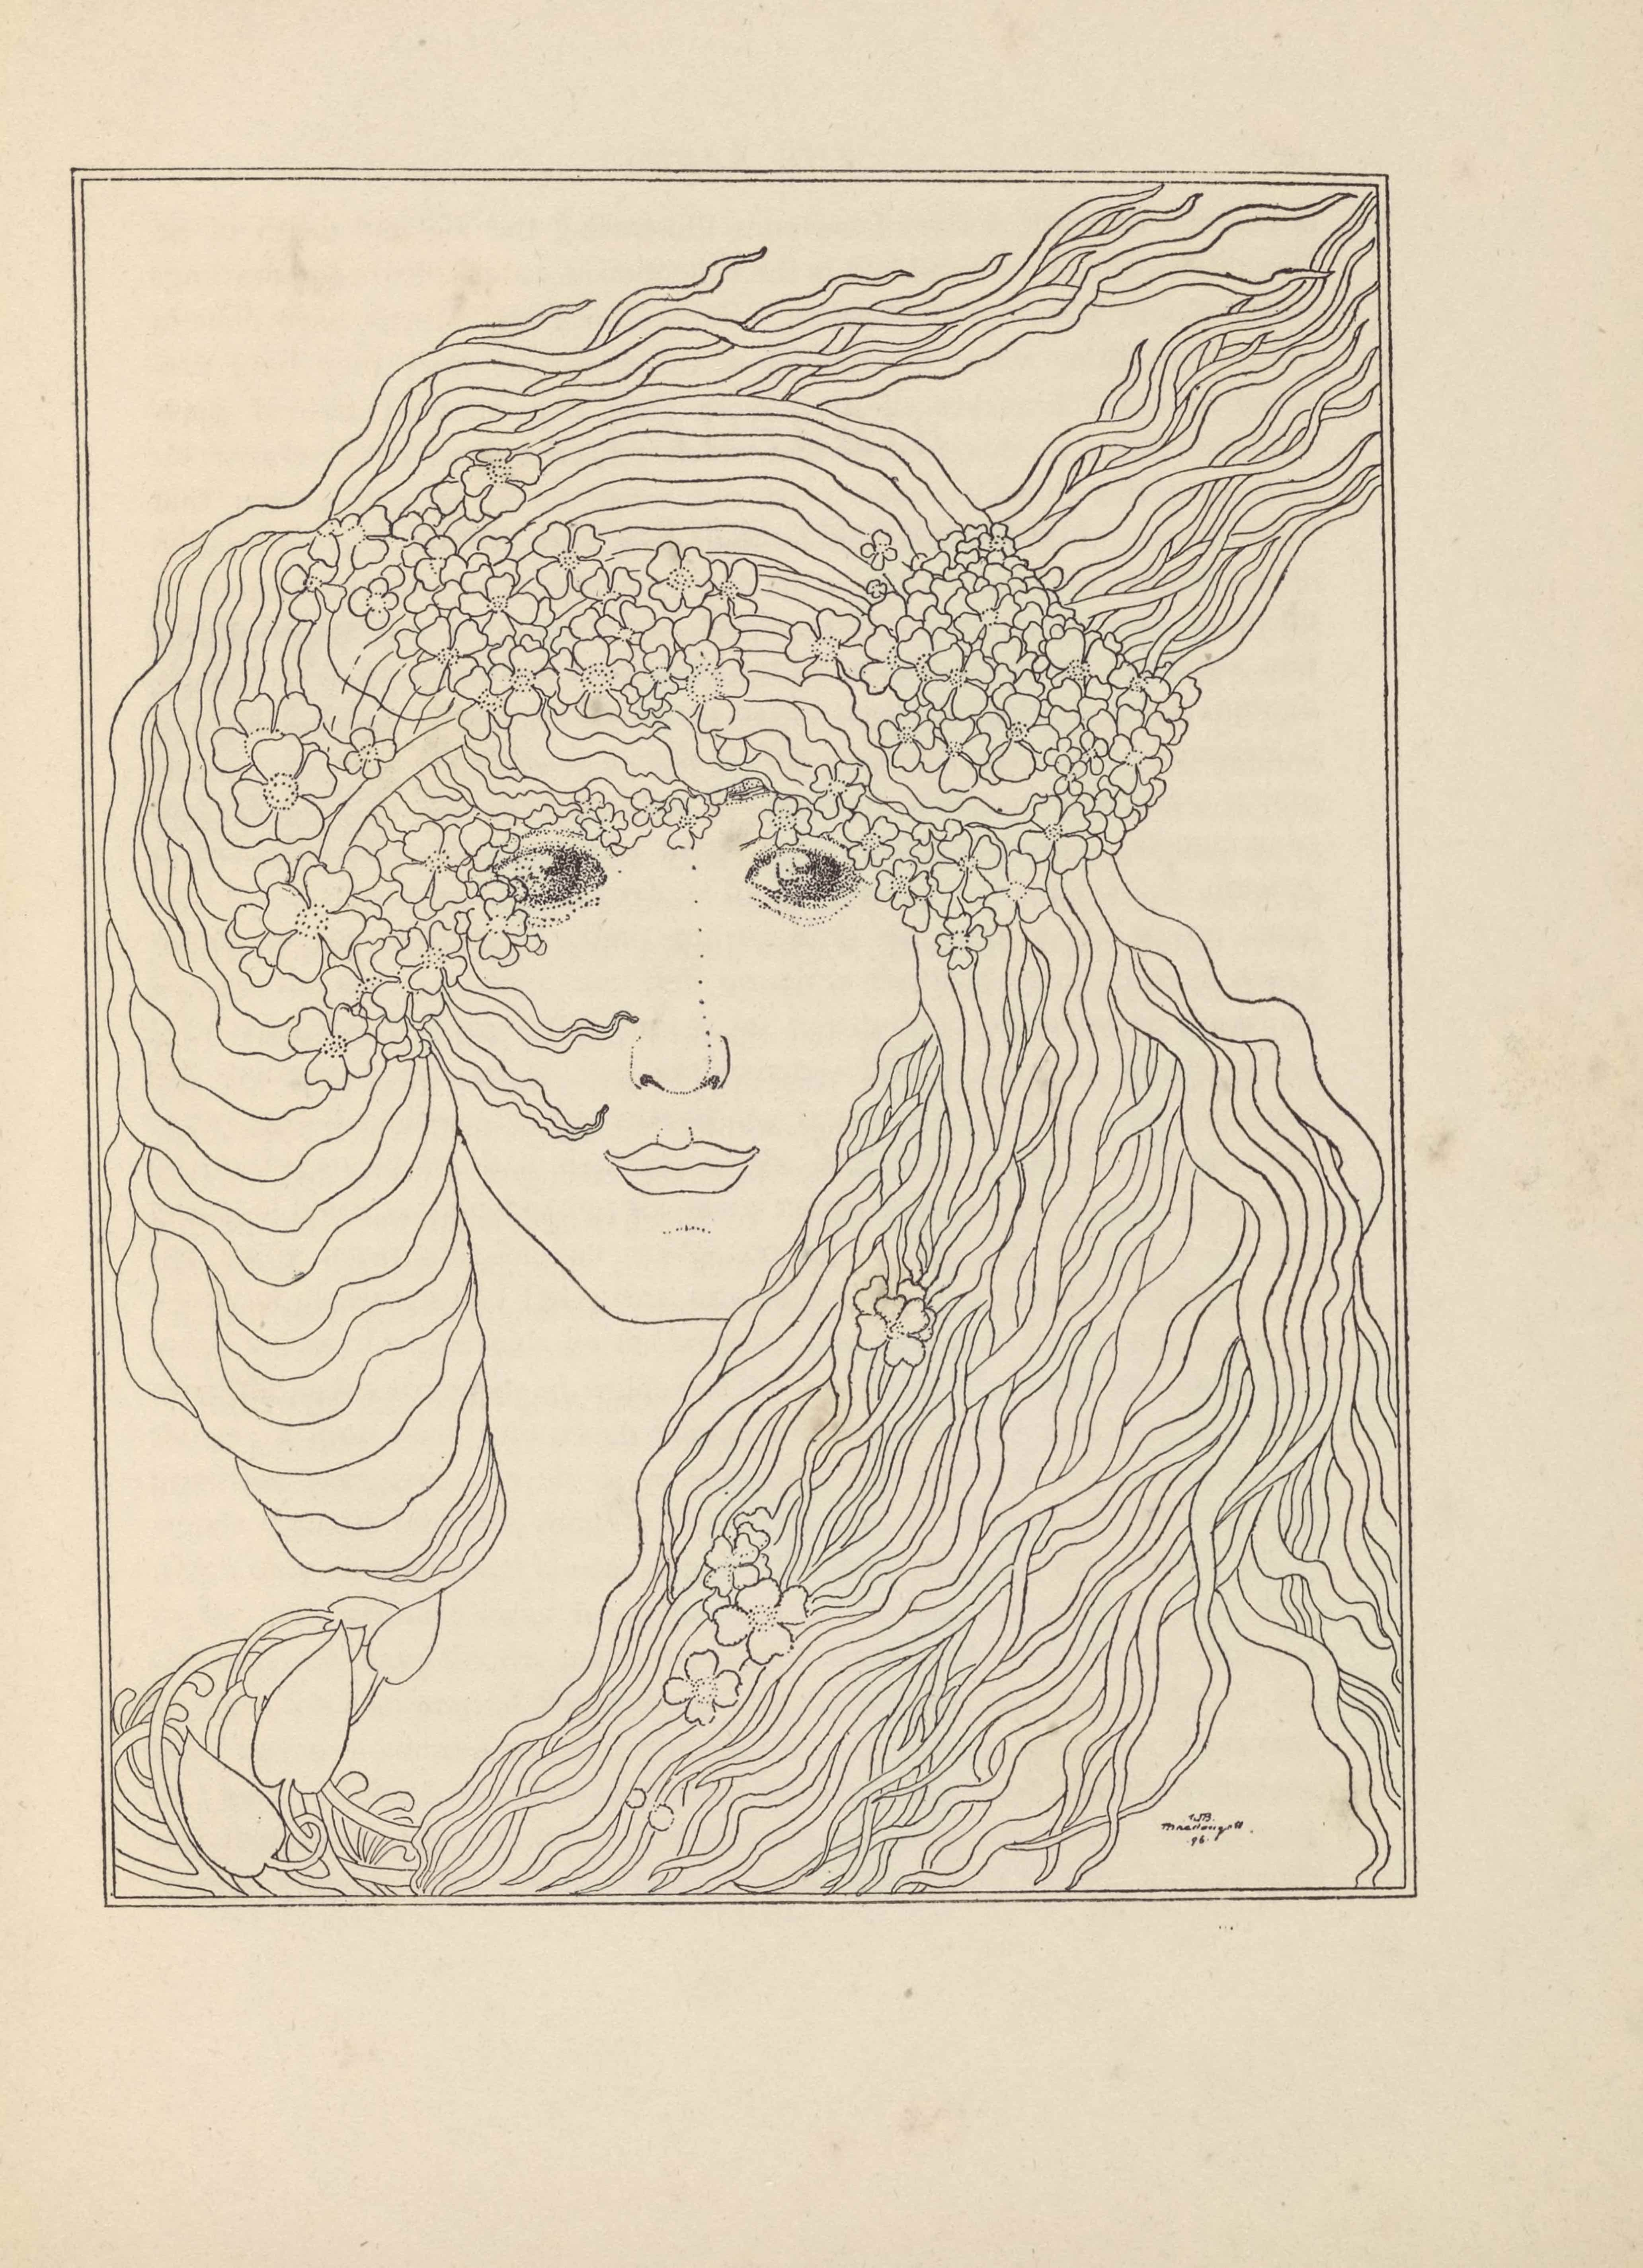 "The line-block reproduction of a pen-and-ink drawing by W. B. Macdougall is in portrait orientation and bordered by a double lined rectangular frame. The light line drawing depicts a woman facing forward, showing her face, hair, and neck. Her hair is made of thick wavy strands, framing her left jaw and crossing in front of her neck before curving around her right shoulder. The hair resting on her right shoulder ends in flower petals. The hair on the right side of her head curves up and around the back of her head flowing off into the top right corner of the image. Clustered in her hair around the crown of her head are garlands of four-leaf clovers or four-petaled flowers; there are a few more lower down in her hair as well. Her eyes are sketched via stippling and in this way stand out from the rest of the drawing which is linear. There is a signature at the bottom-right of the image: ""WB Macdougall."" Beneath the name is the number 96 with a dot on the left and right sides."